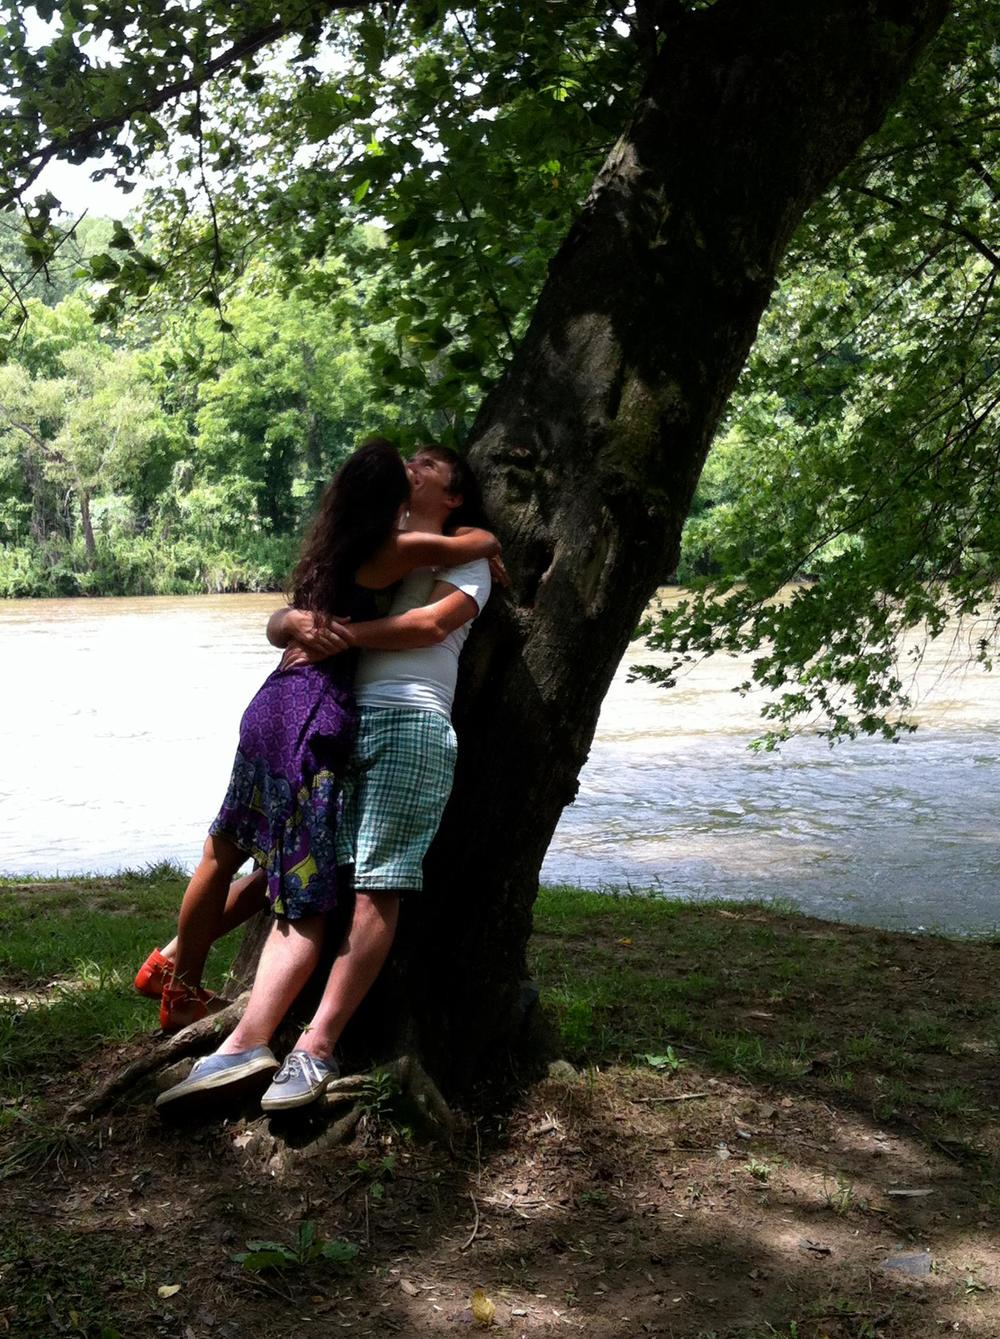 Lovebirds under the tree by the French Broad River, Asheville, NC